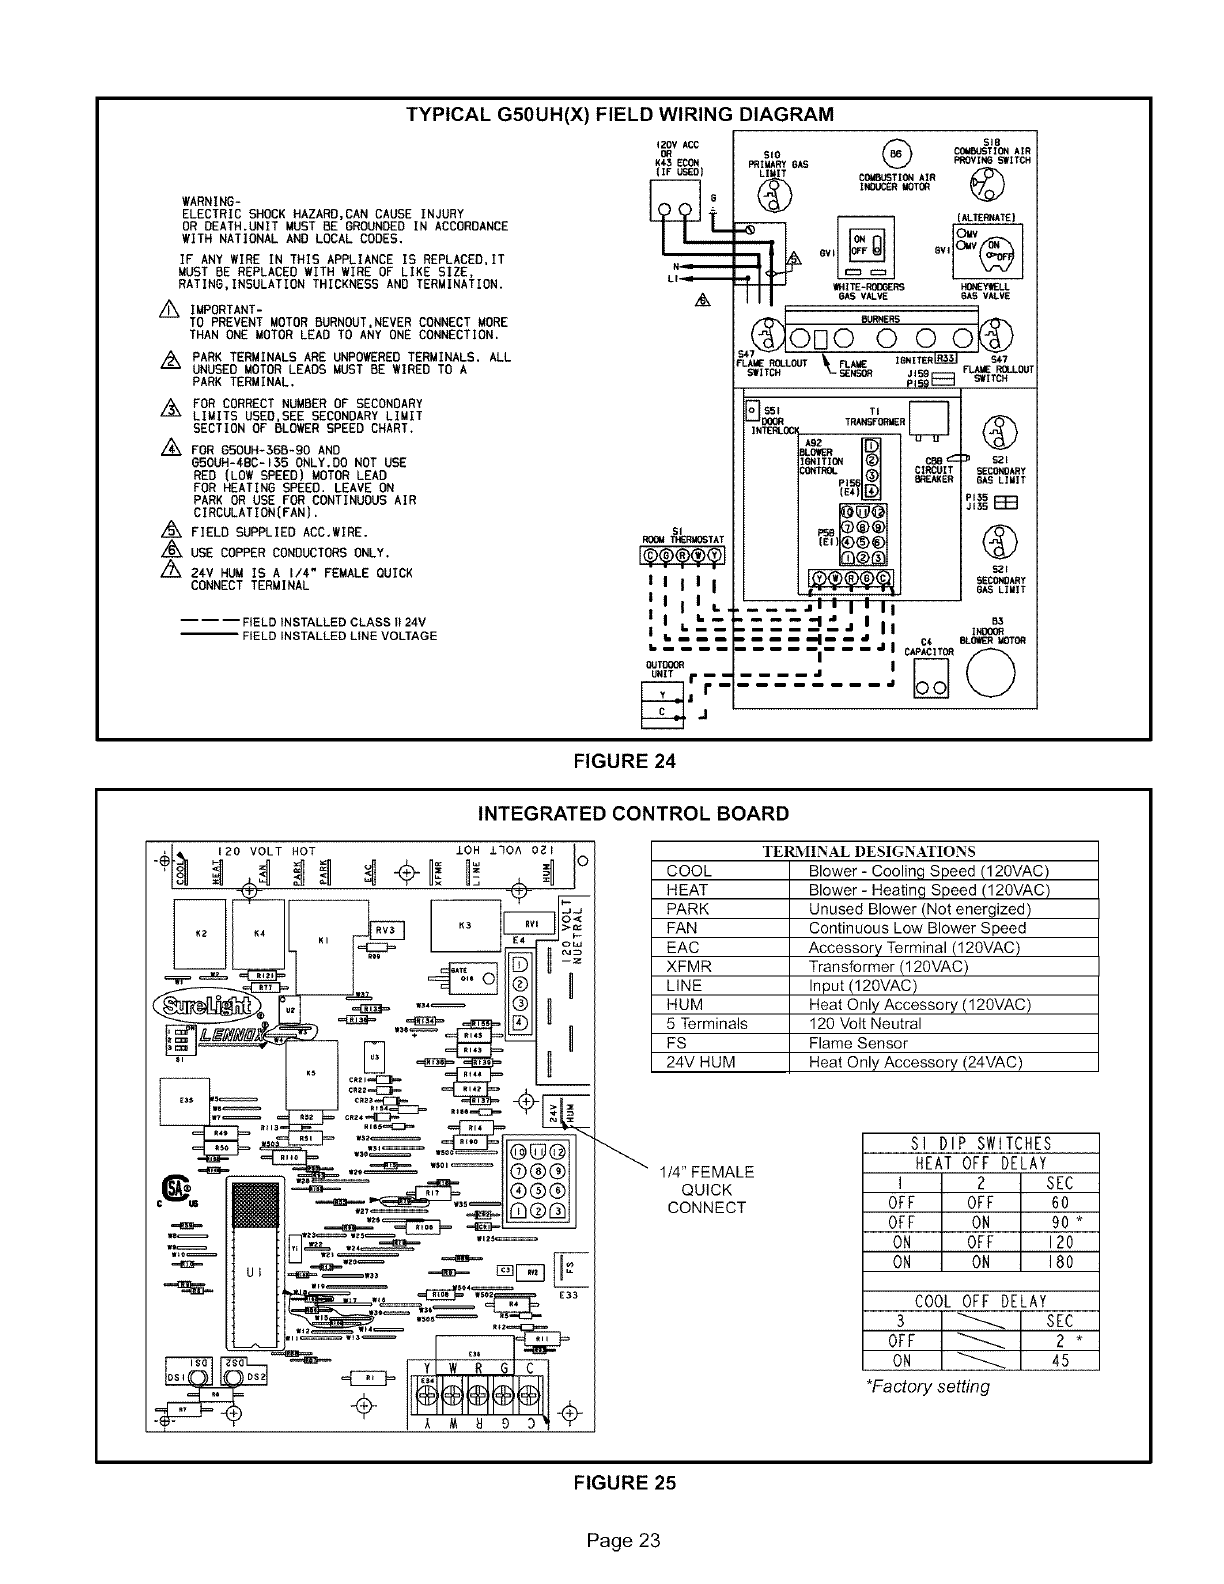 diagrams lennox thermostat wiring diagram trouble matching lennox wiring to honeywell